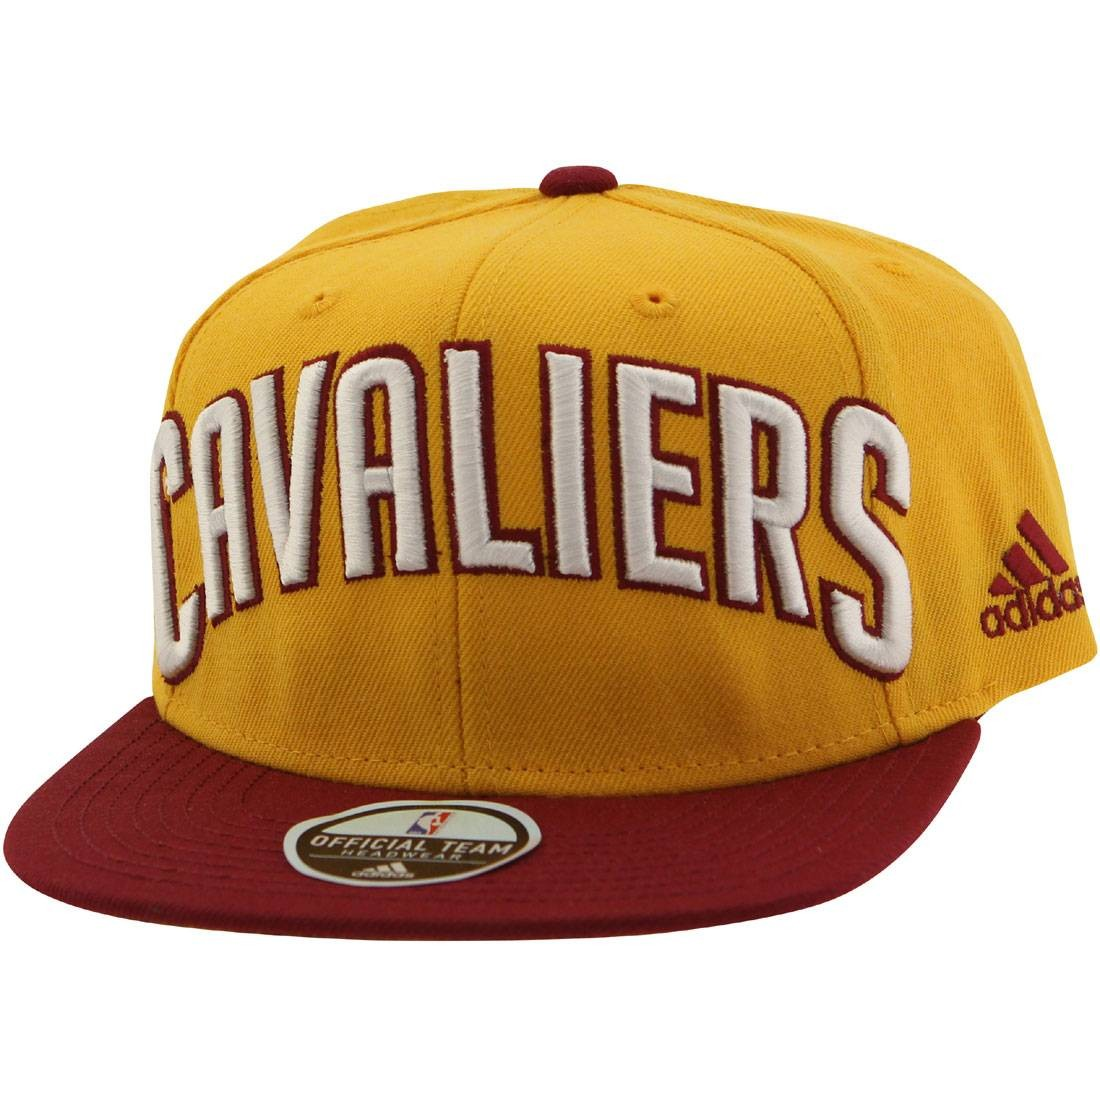 74e5be24c9a Adidas NBA Cleveland Cavaliers On Court Snapback Cap gold maroon